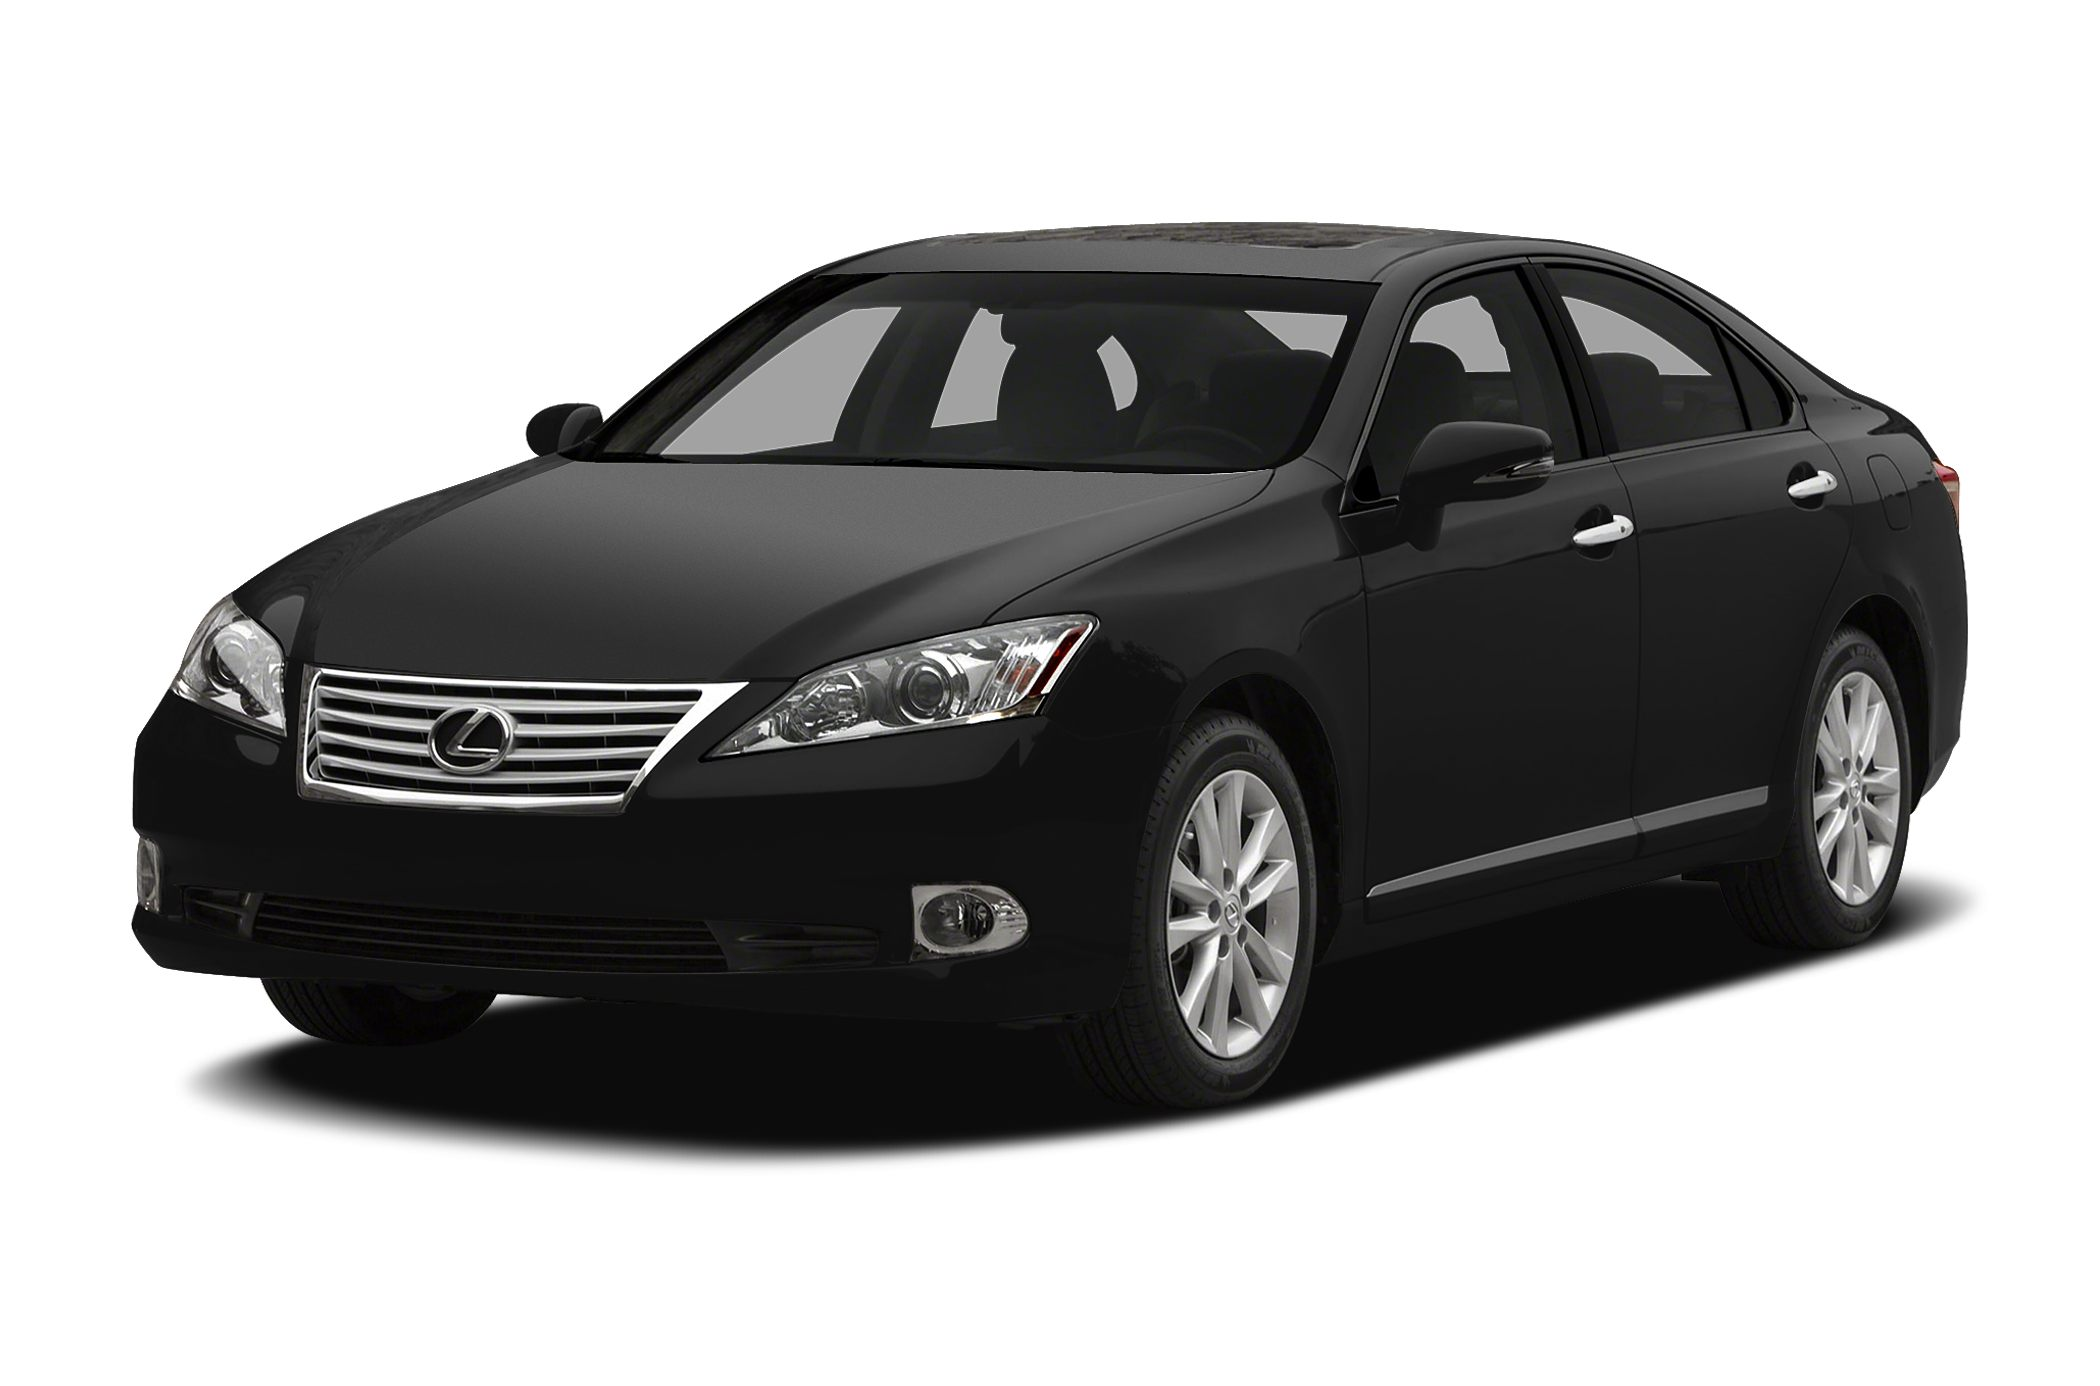 2011 Lexus ES 350 Base Sedan for sale in Jonesboro for $24,872 with 32,982 miles.